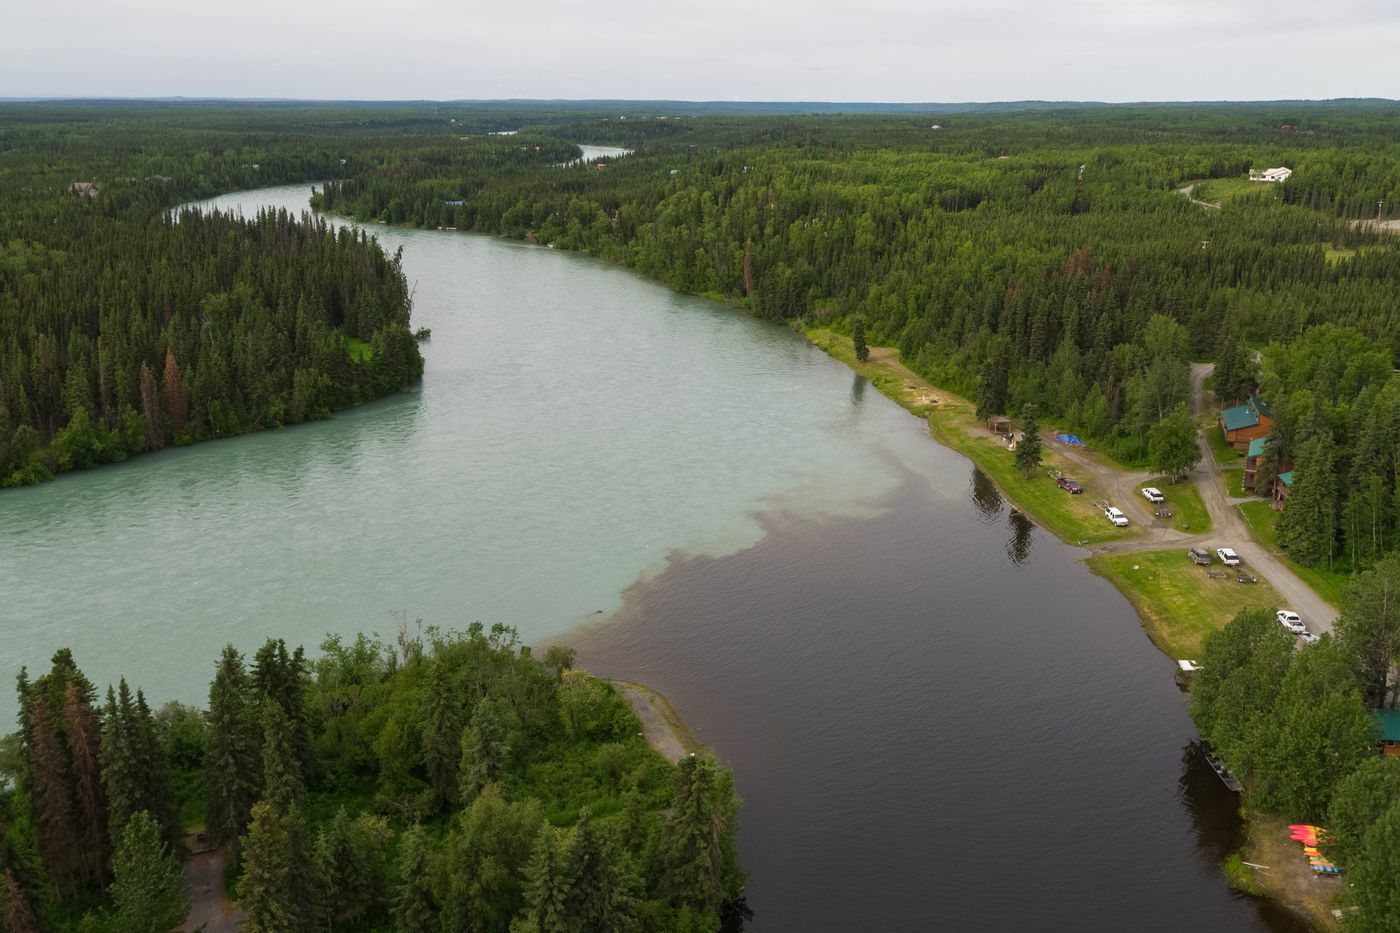 The Moose River flows into the Kenai River Friday, June 29, 2018 at Izaak Walton State Park in Sterling. The area is a popular king salmon fishing spot, but the fishery has been closed since June 20 because of poor returns, and will remain closed through July. (Loren Holmes / ADN)